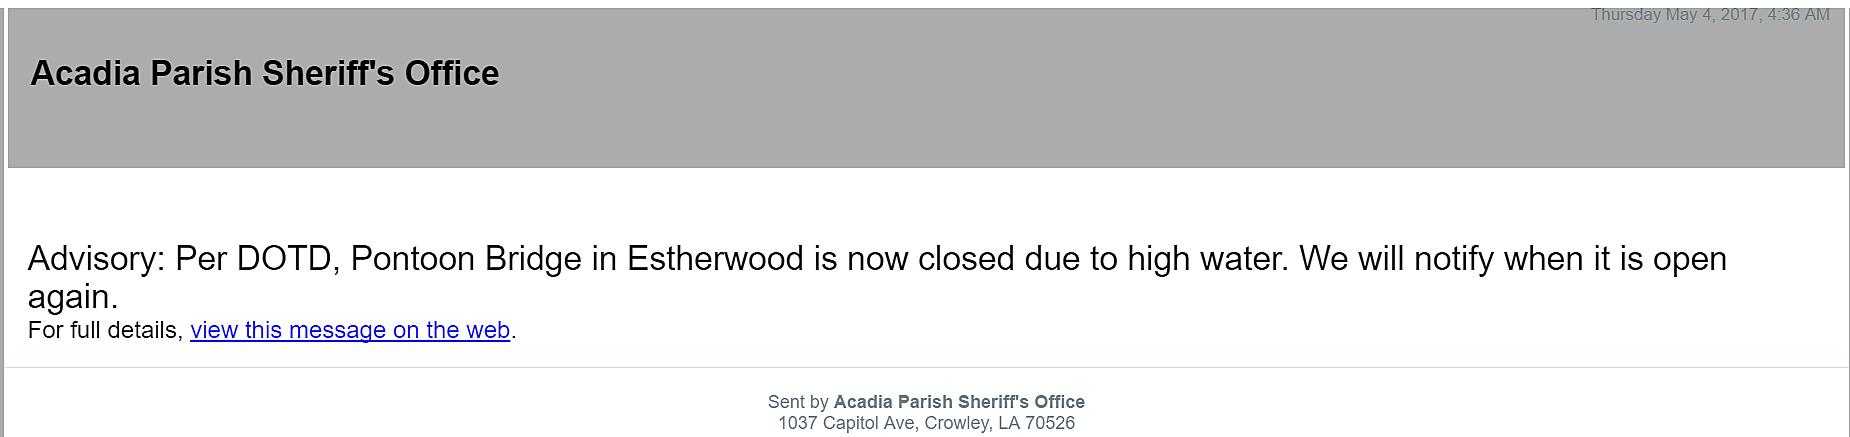 Acadia Parish Sheriff's Office/Nixle